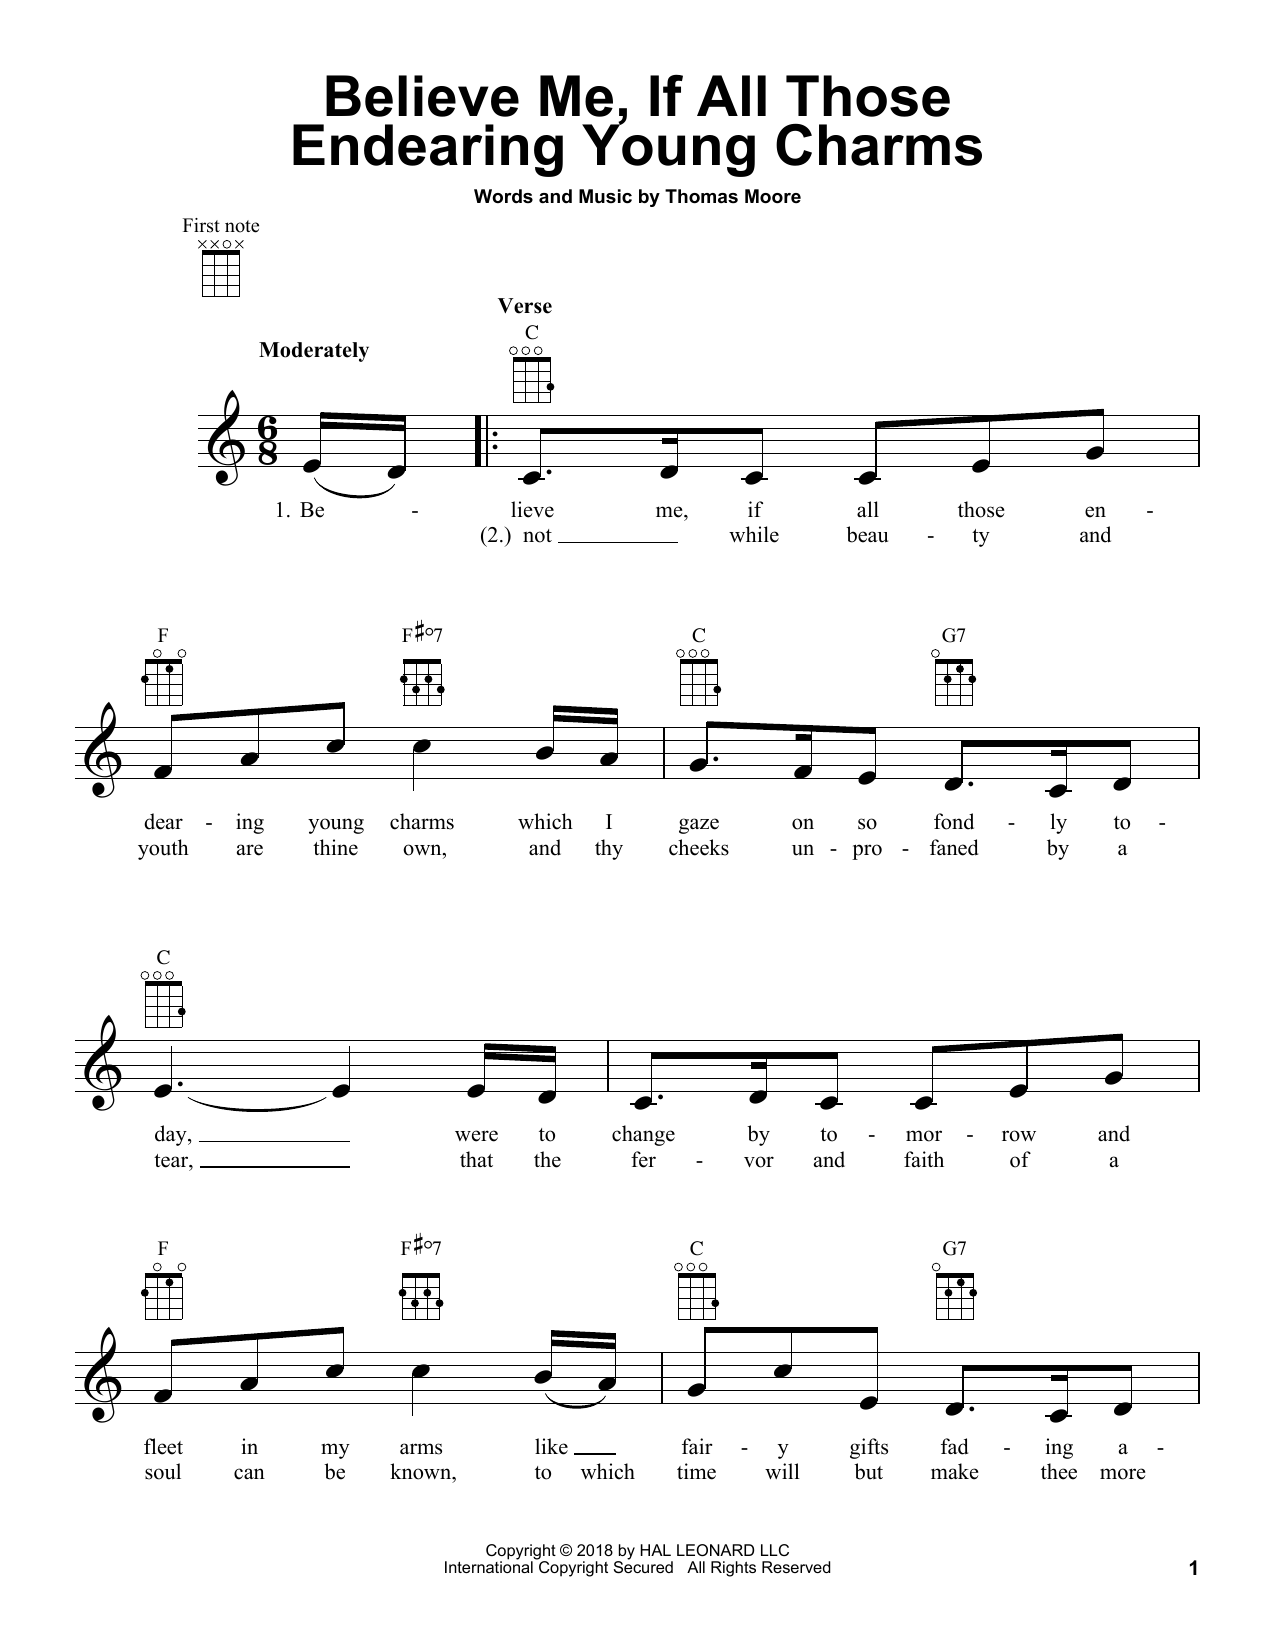 Thomas Moore Believe Me, If All Those Endearing Young Charms sheet music notes and chords. Download Printable PDF.